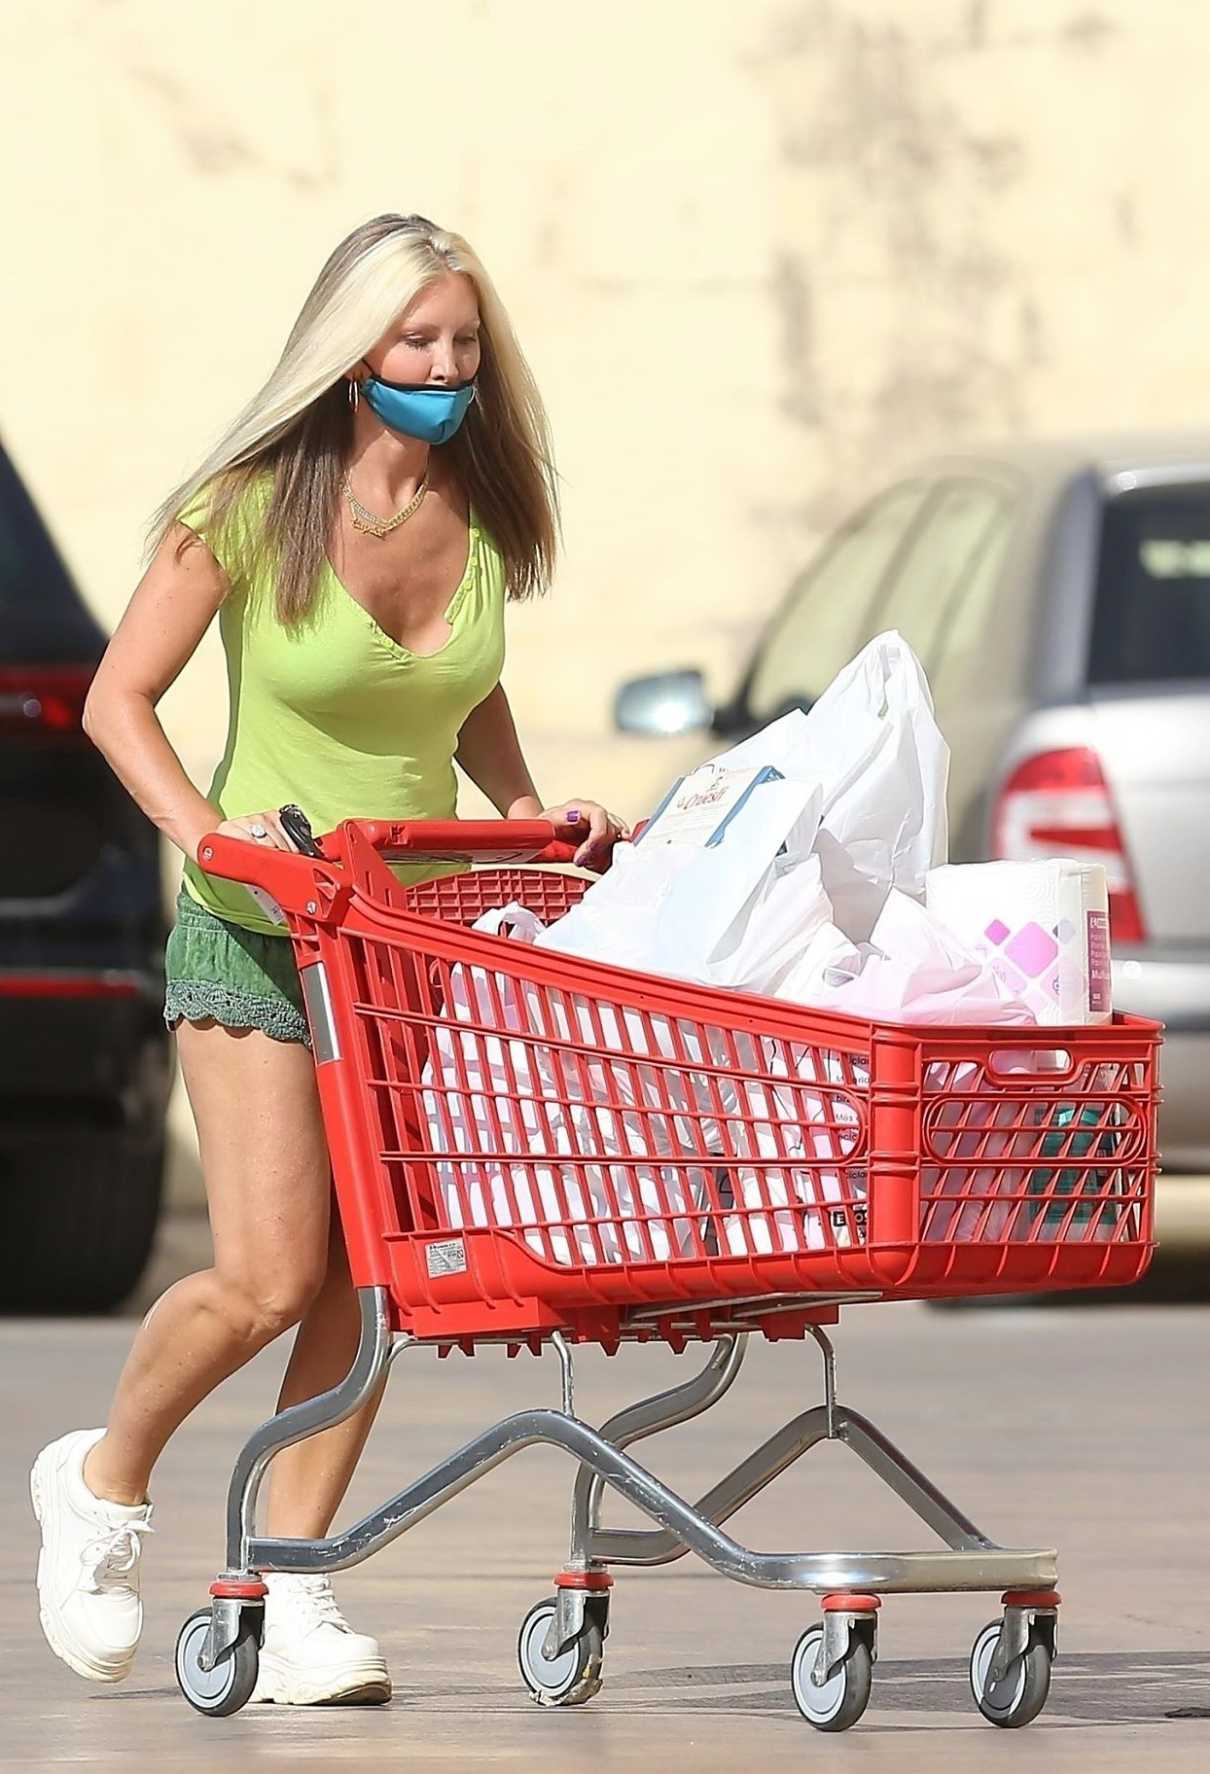 Caprice Bourret in a Protective Mask